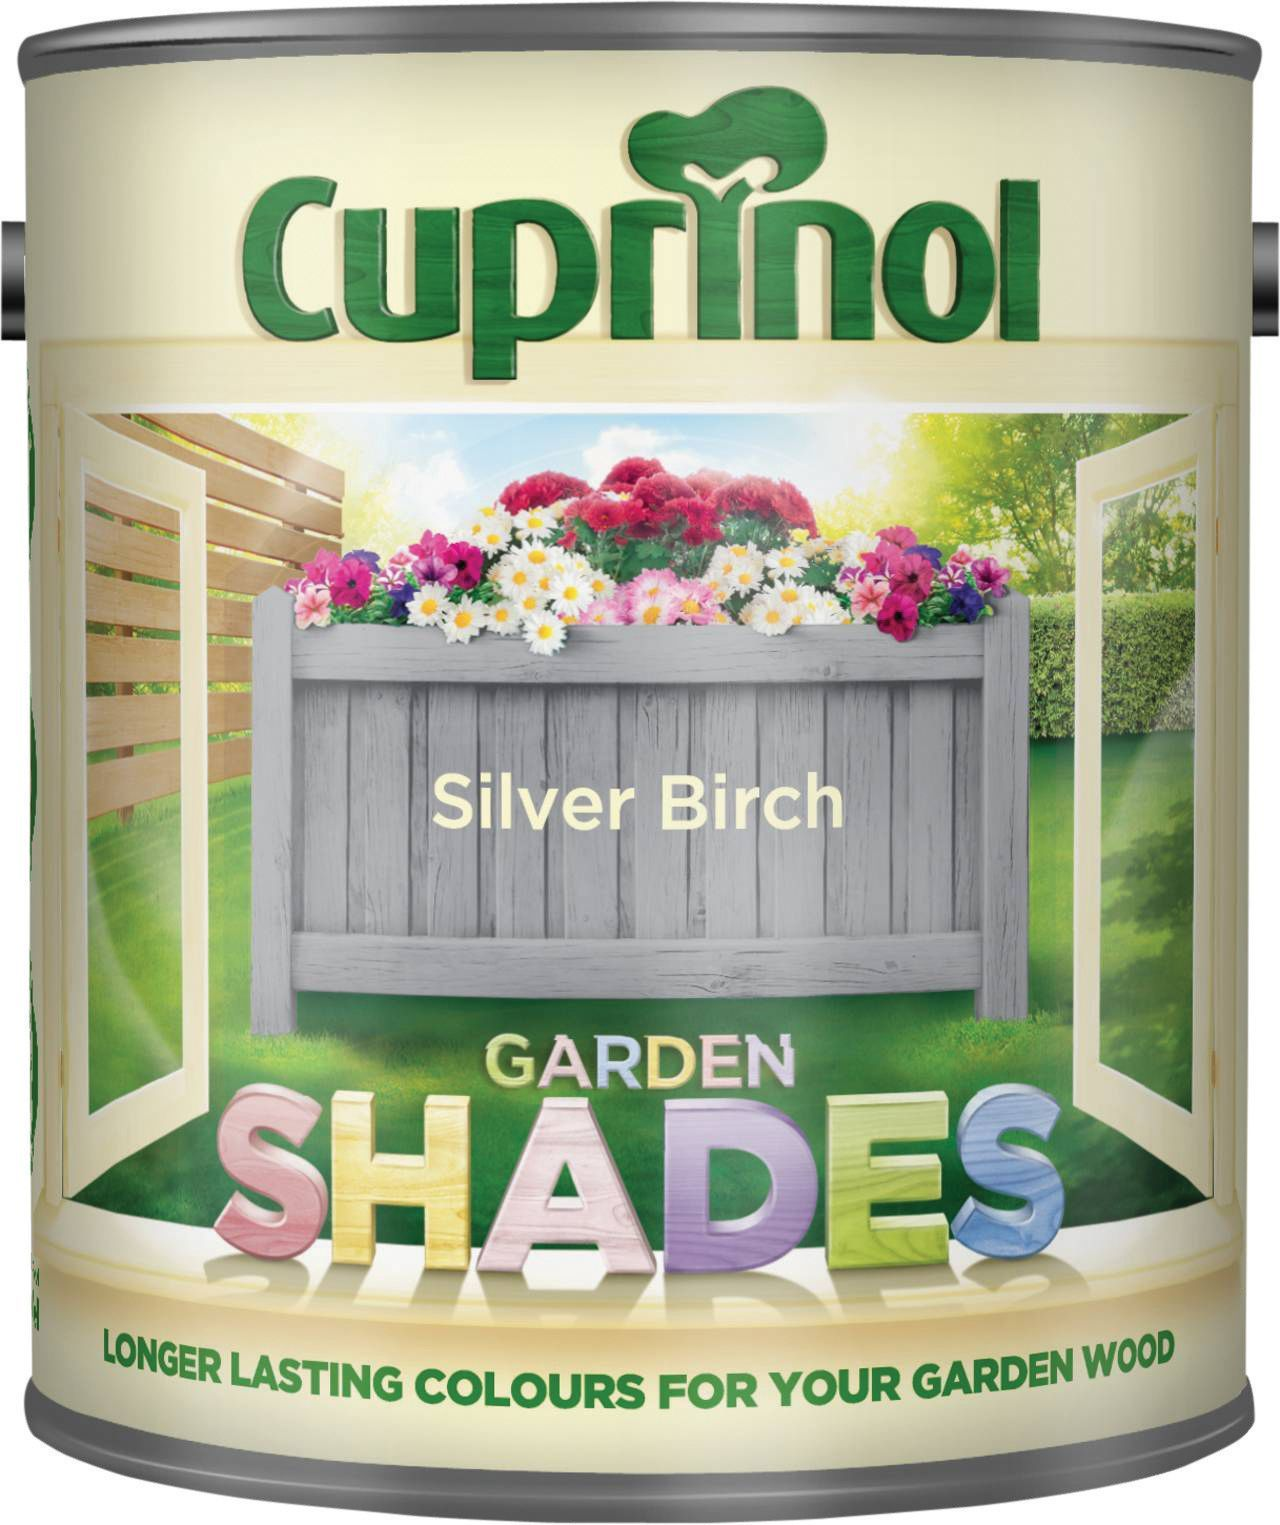 Cuprinol Garden Shades Matt Wood Paint - Silver Birch 1L | Pinterest